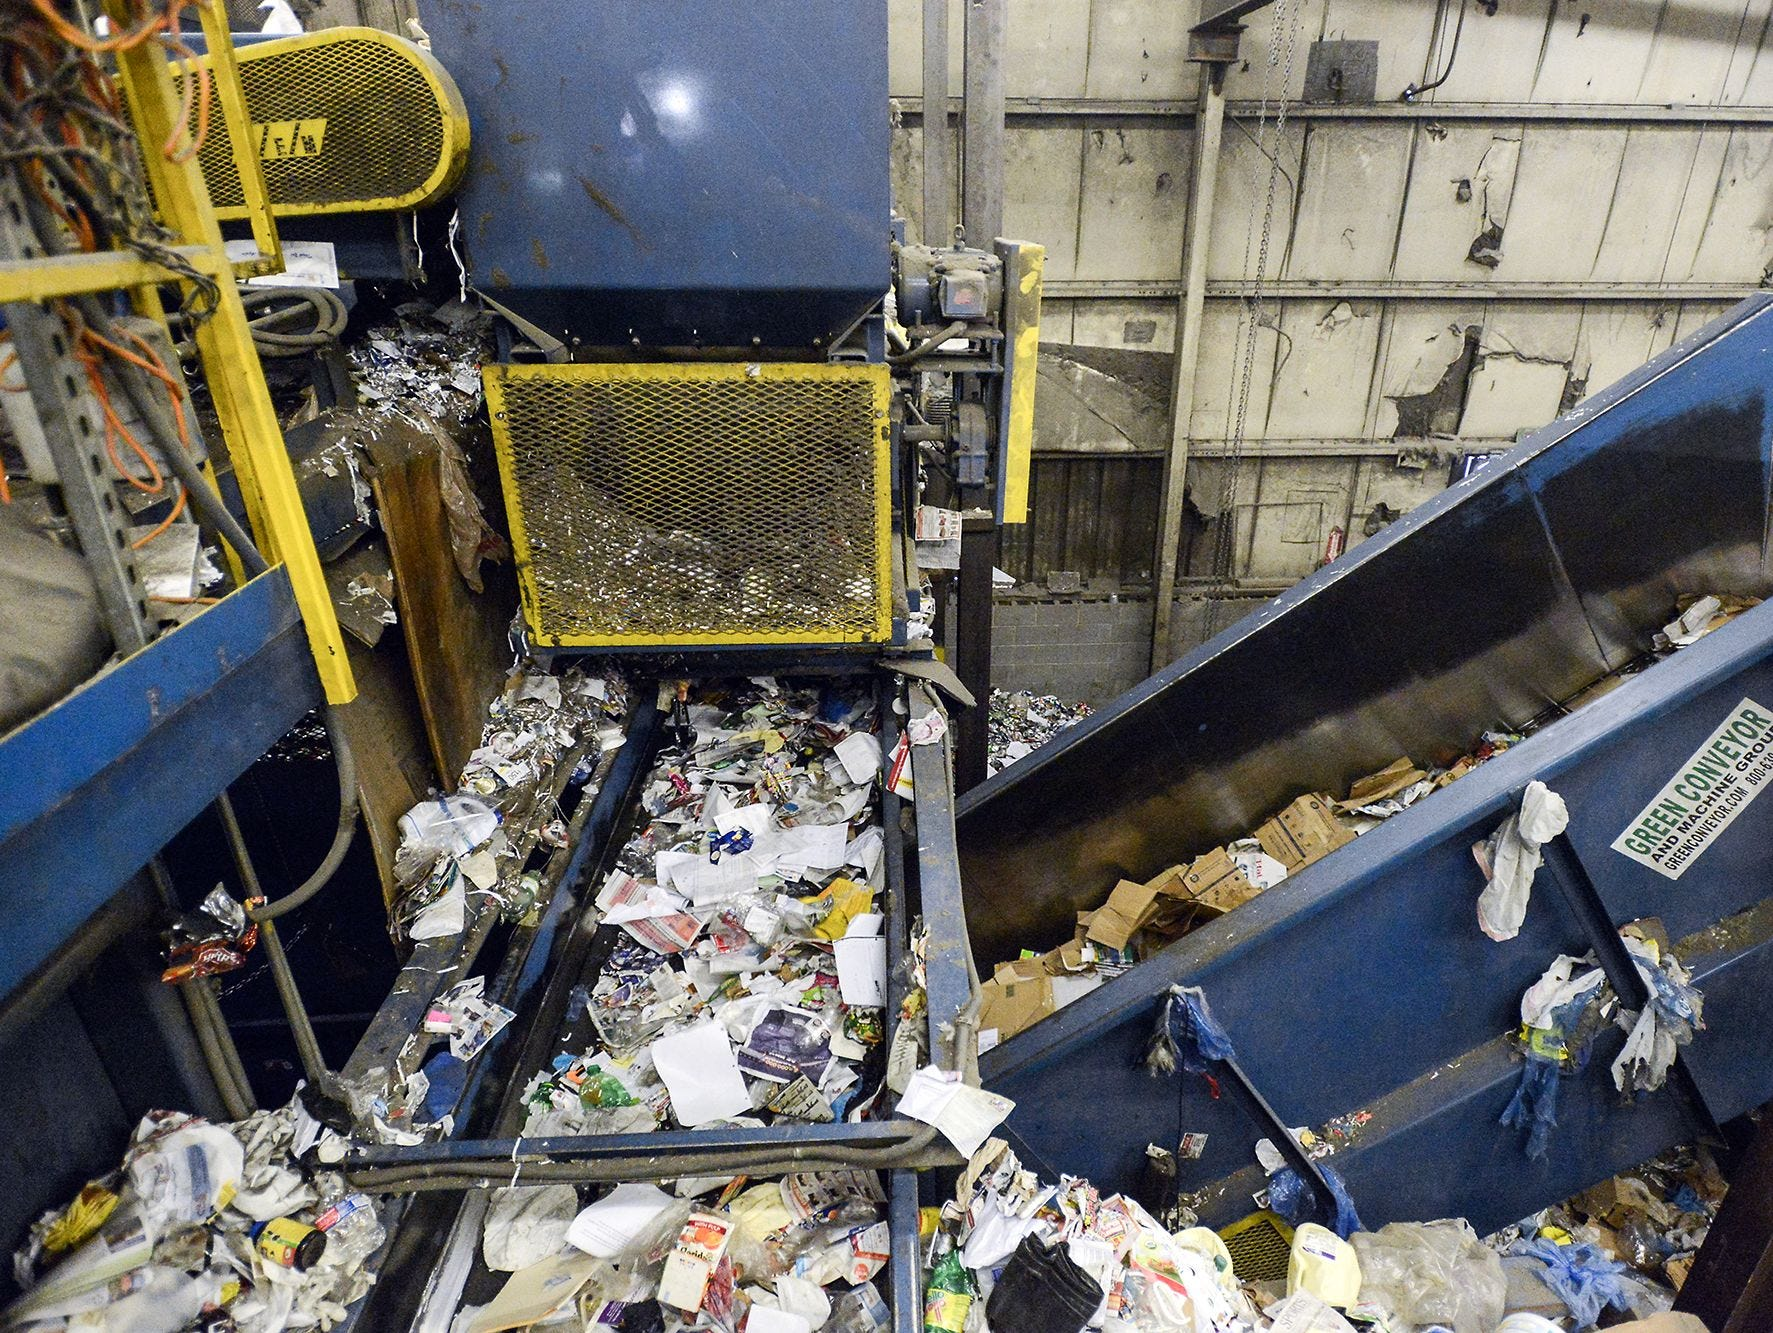 """One part of the problem with trash going into recycling is """"wishful recycling,"""" in which people put items they hope can be recycled in the recycling bin, even though they're not recyclable items."""